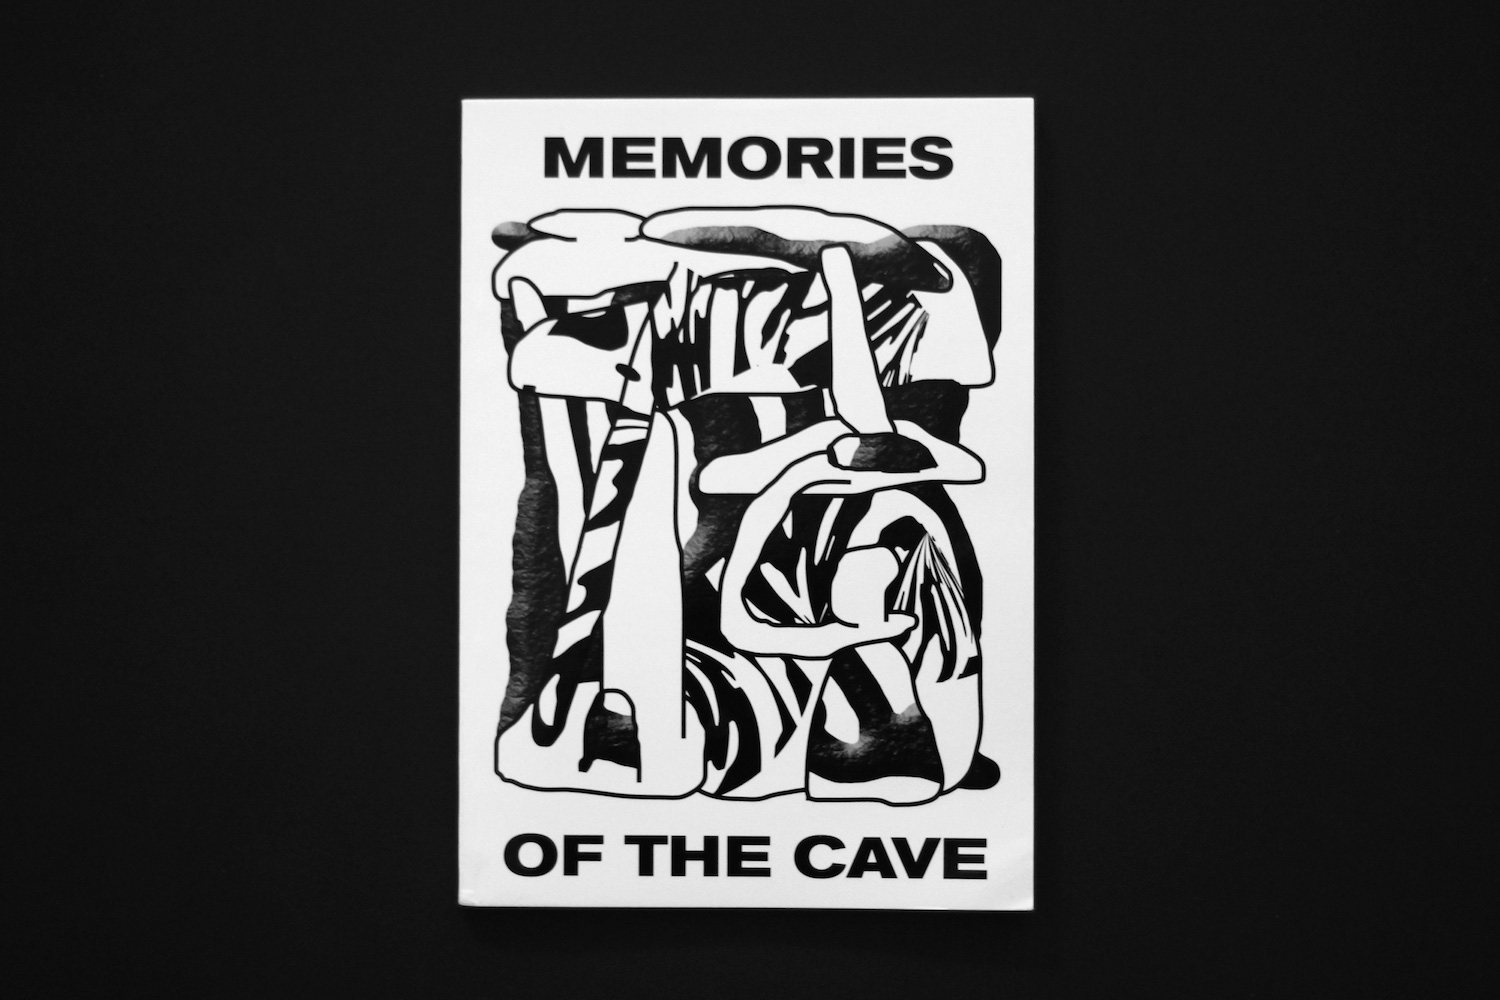 Memories of the Cave – Célestin Krier x POOL publishing